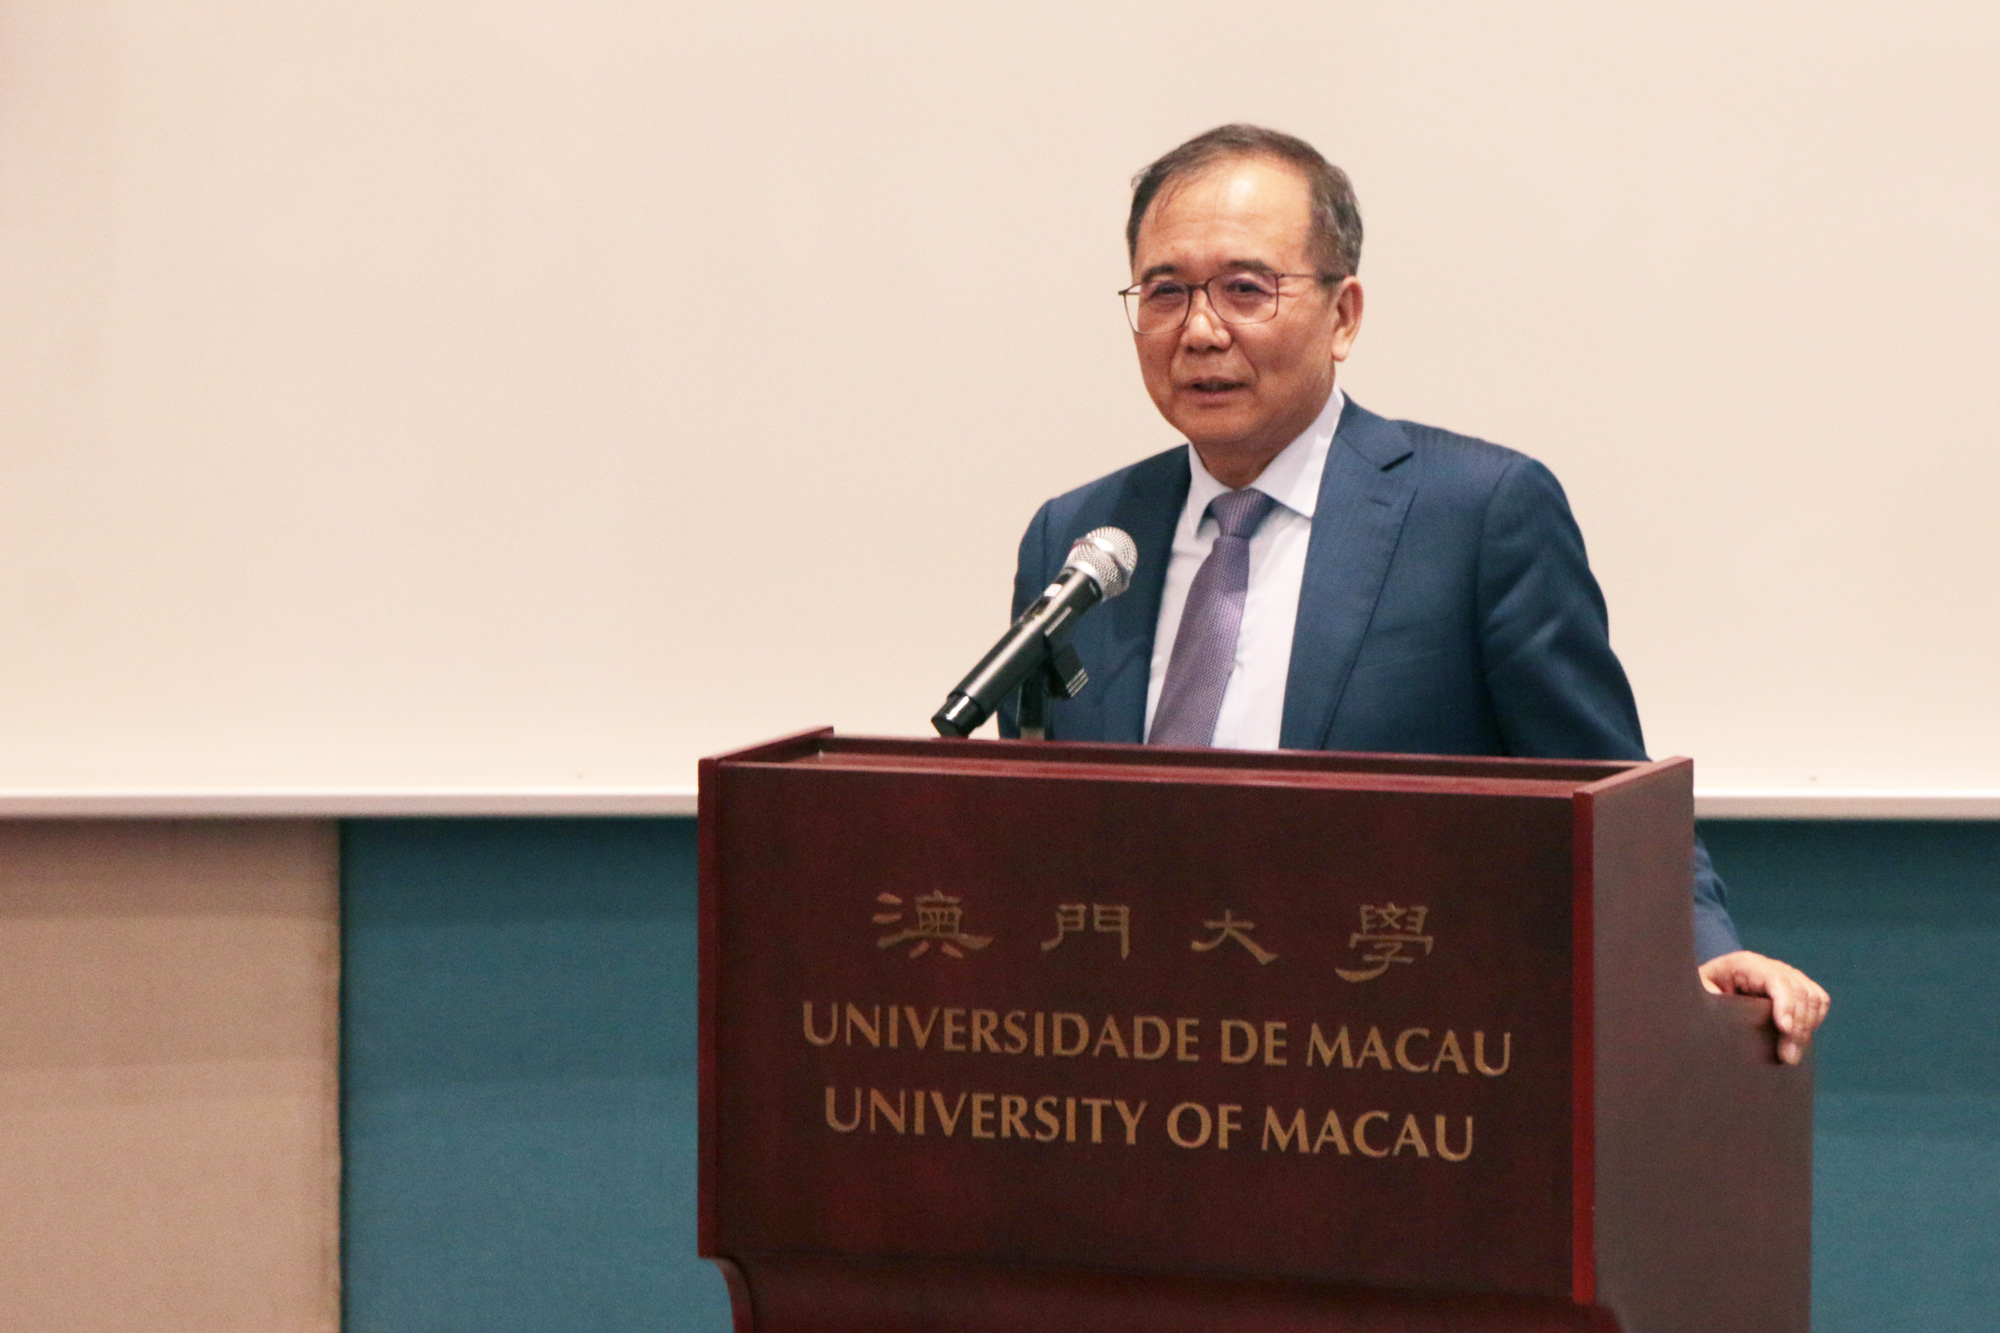 Lin Jianhua gives a talk at UM on education reform